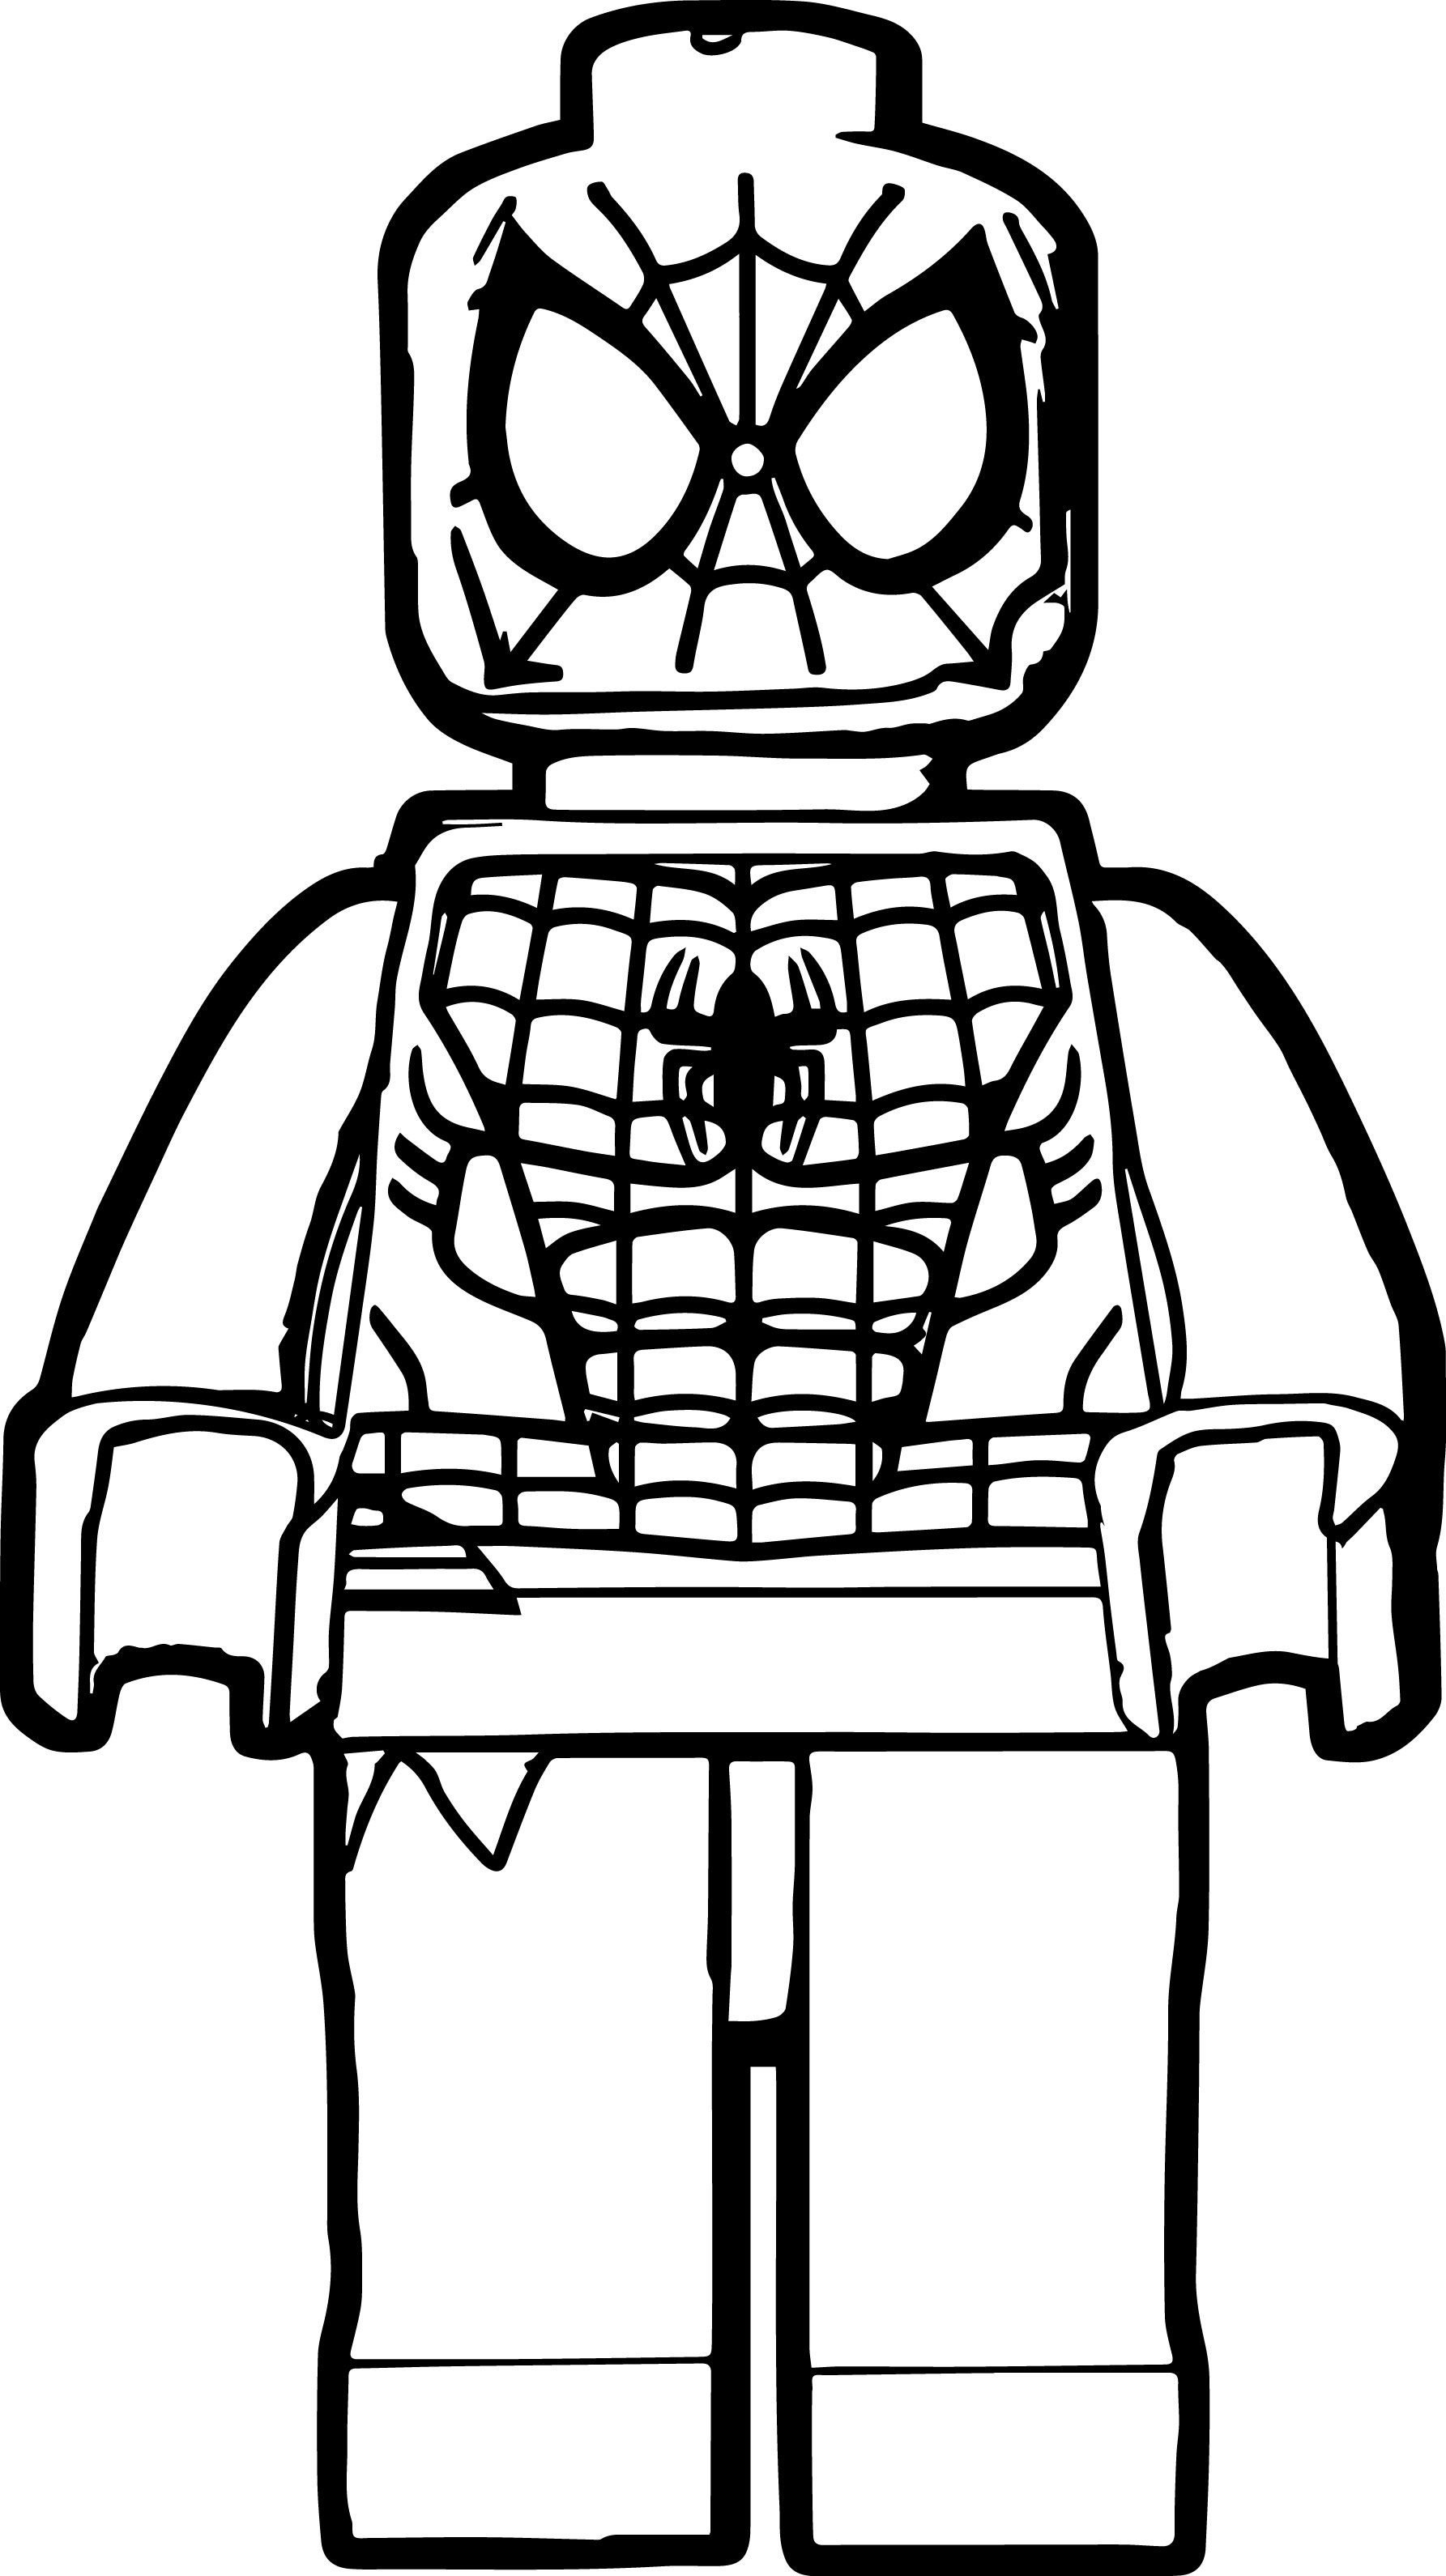 Spider Man Lego Coloring Page Lego coloring pages, Lego